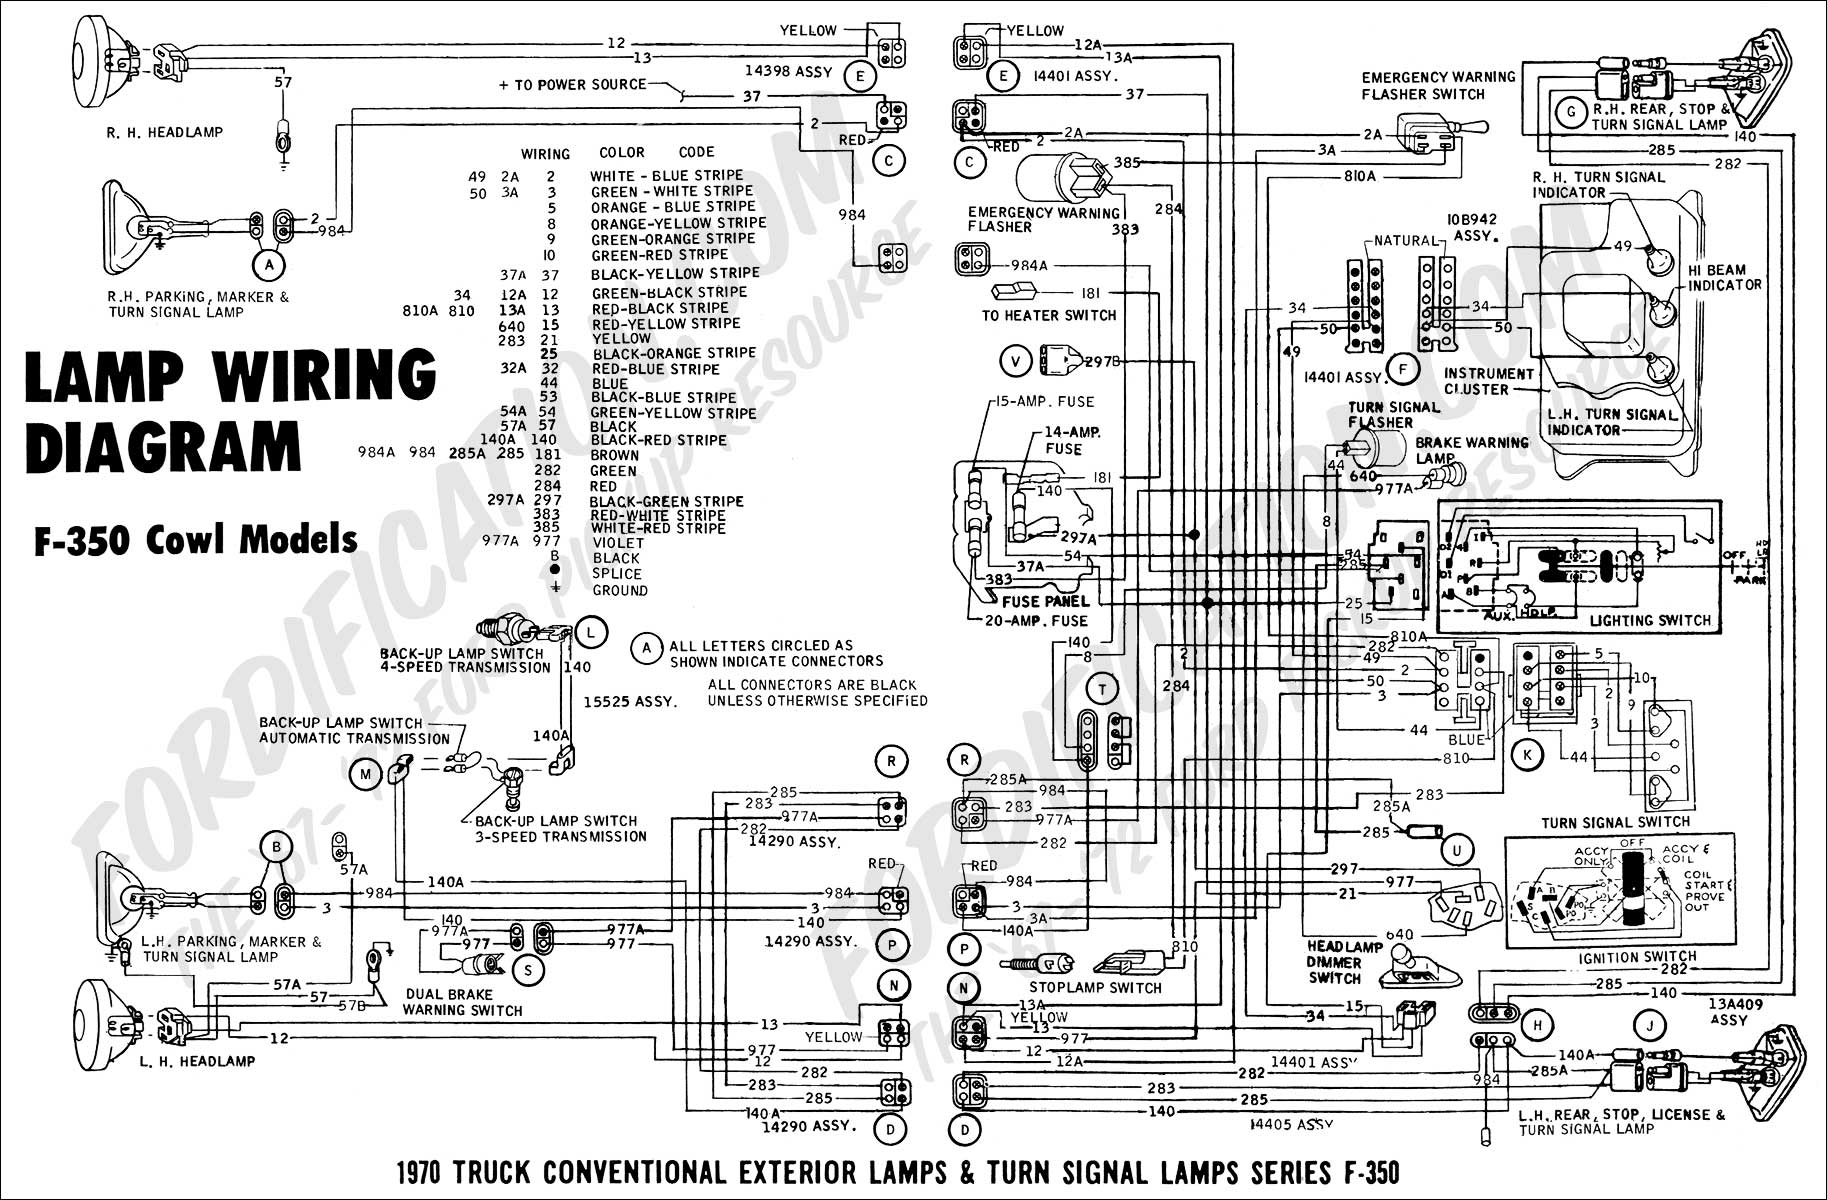 2001 ford f150 power window wiring diagram circulatory system to label lamp wire way switch images simple truck technical drawings and schematics section h 1970 f 350 cowl models